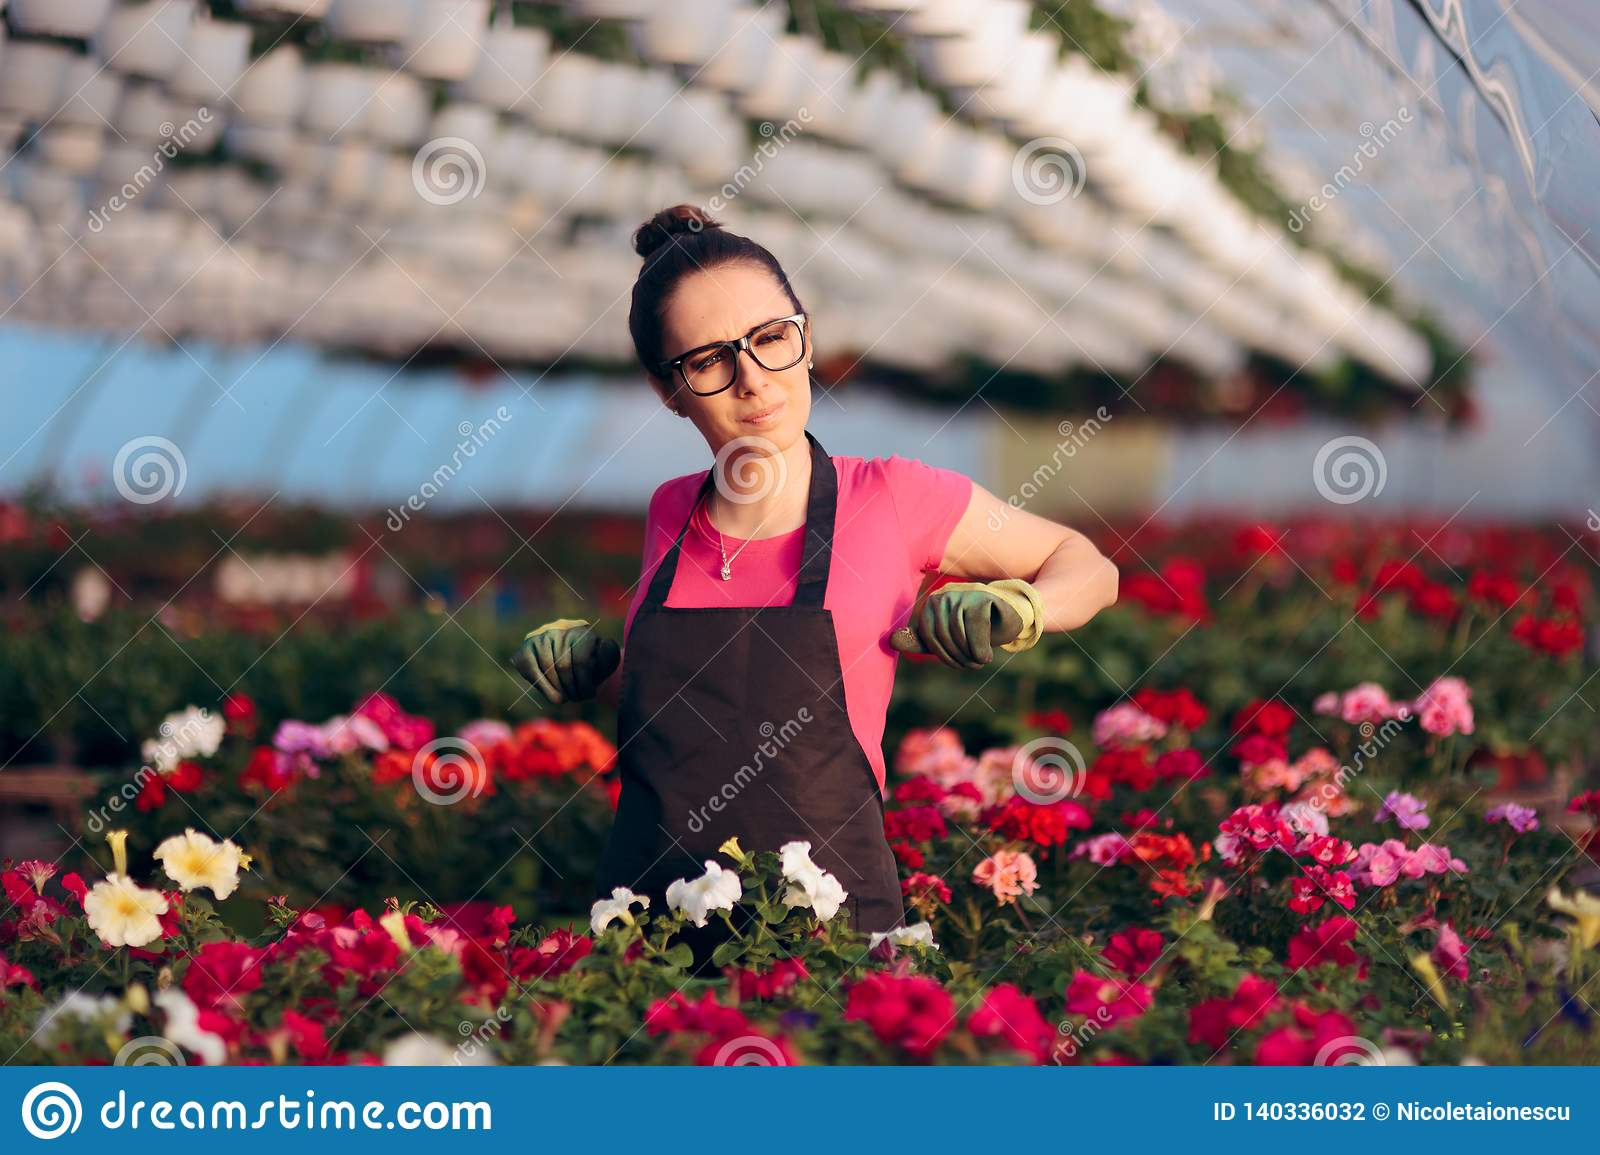 Woman Suffering Injuries While Working in Floral Greenhouse